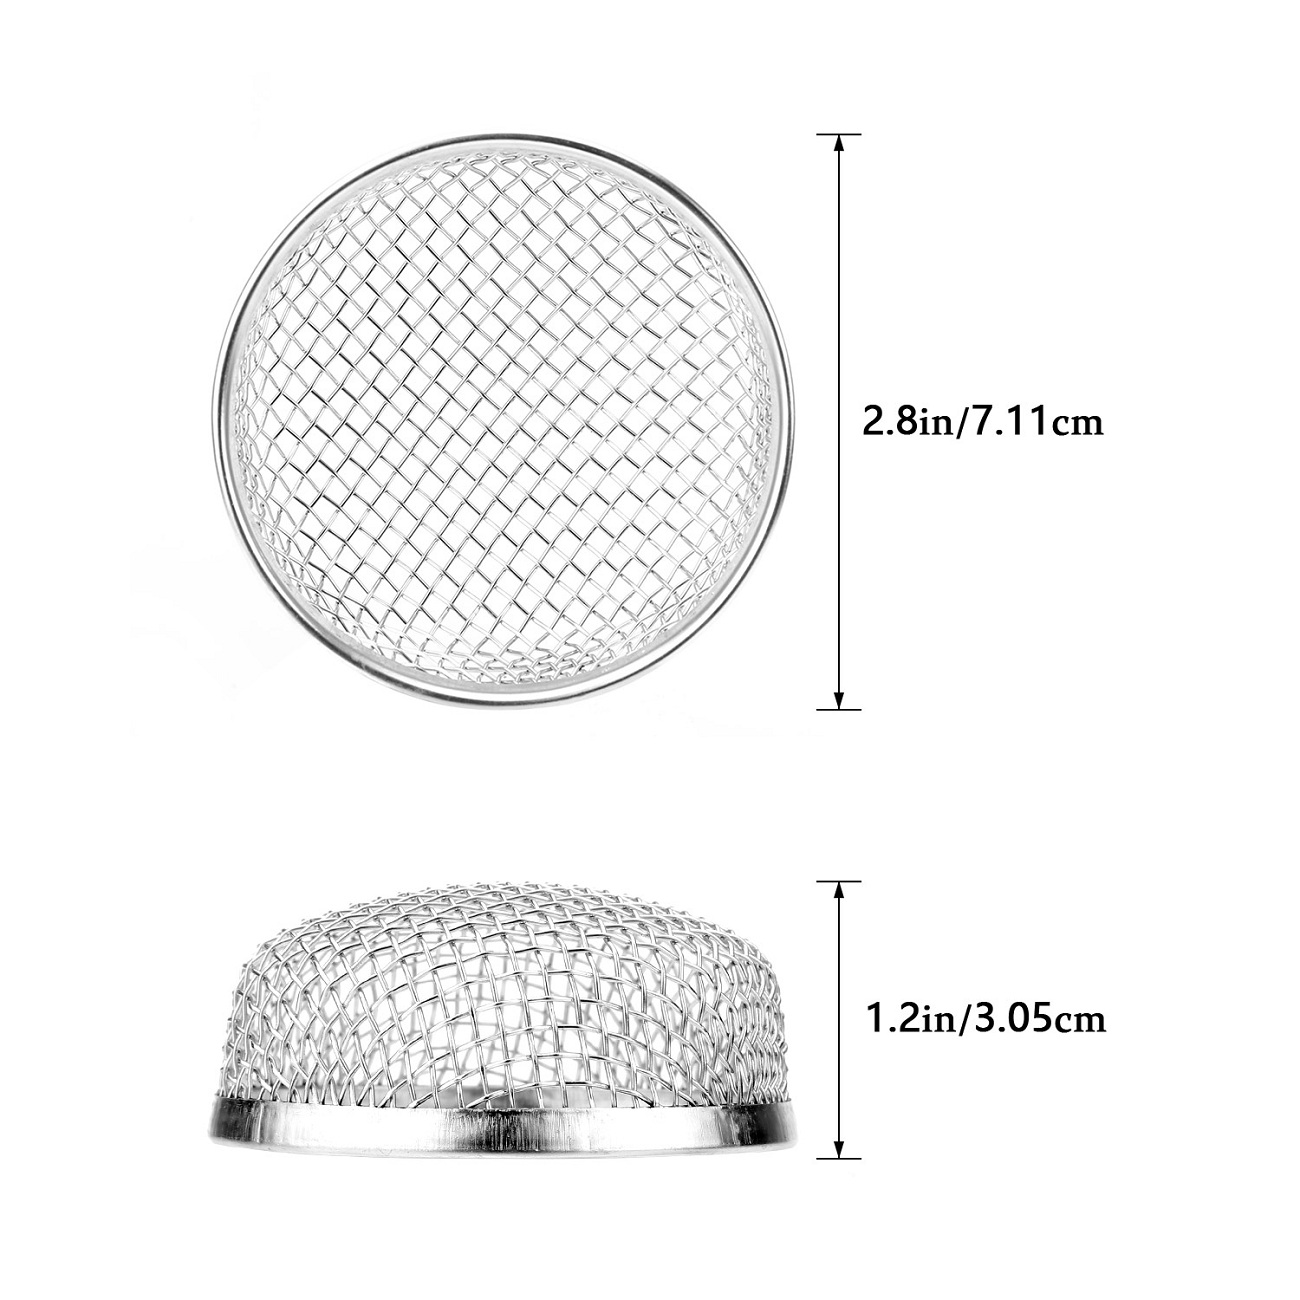 4.5 x 4.5 Inch Tatuo Flying Insect Screen RV Furnace Vent Cover Water Heater Vent Cover Stainless Steel Mesh with Installation Tool